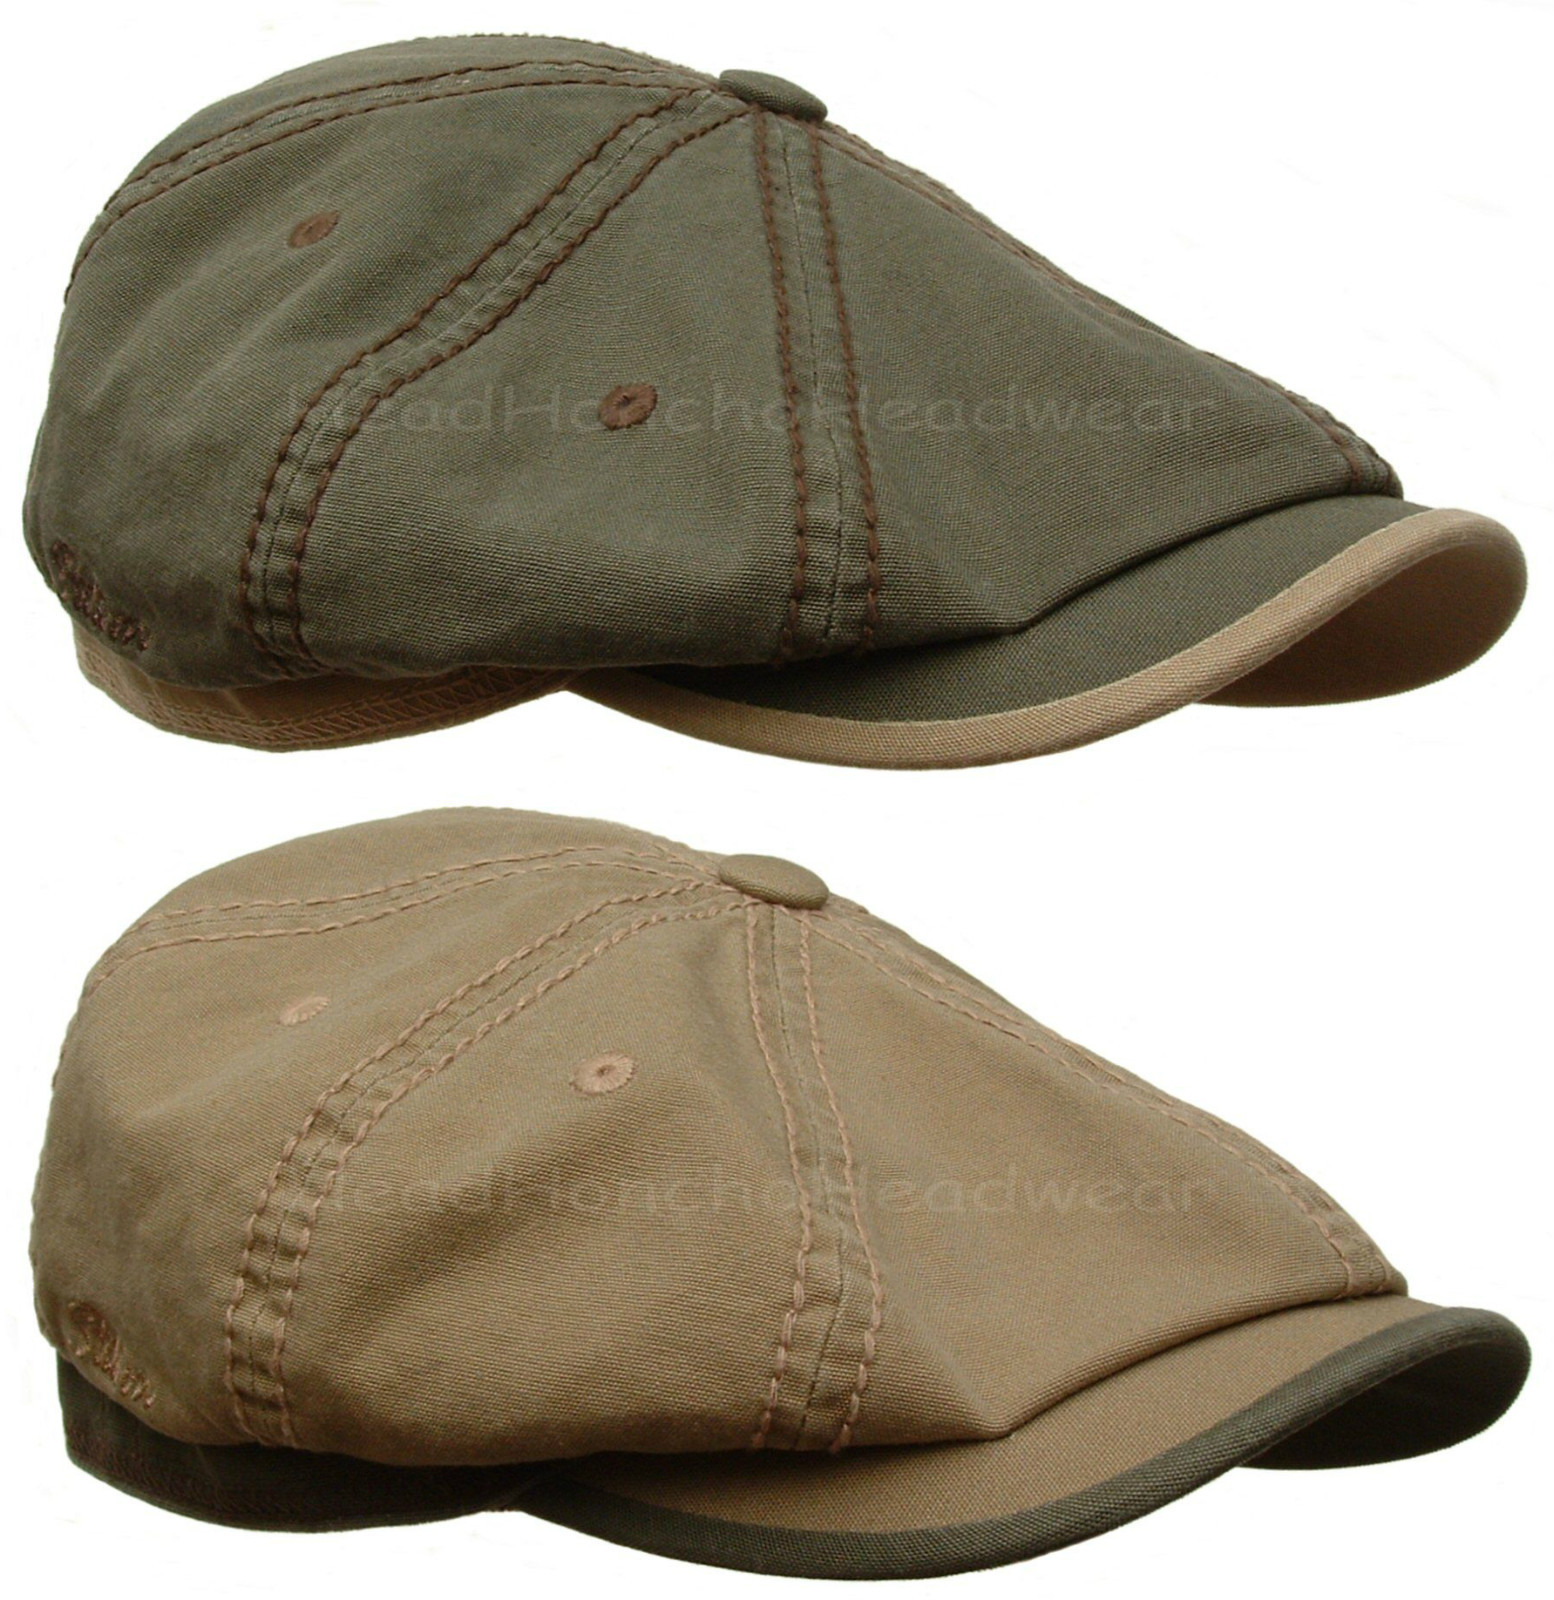 Stetson Hatteras Cotton Gatsby Cap Men Newsboy Ivy Hat Flat Golf Driving  Cabbie  cc9bc7740df